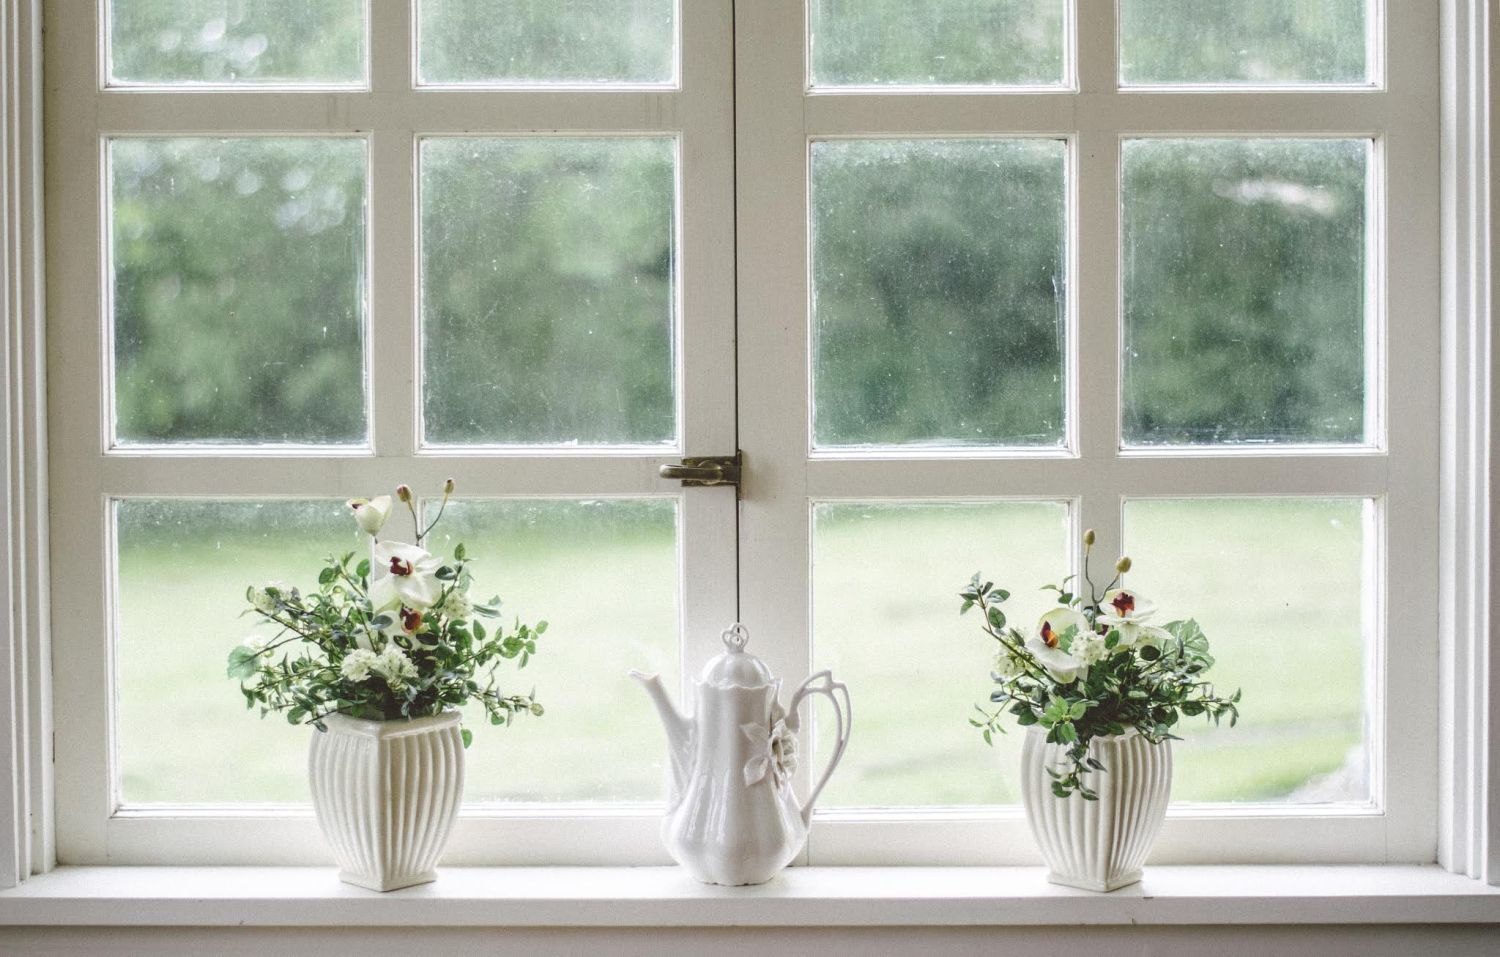 Simple home improvements to ensure your home is ready for winter